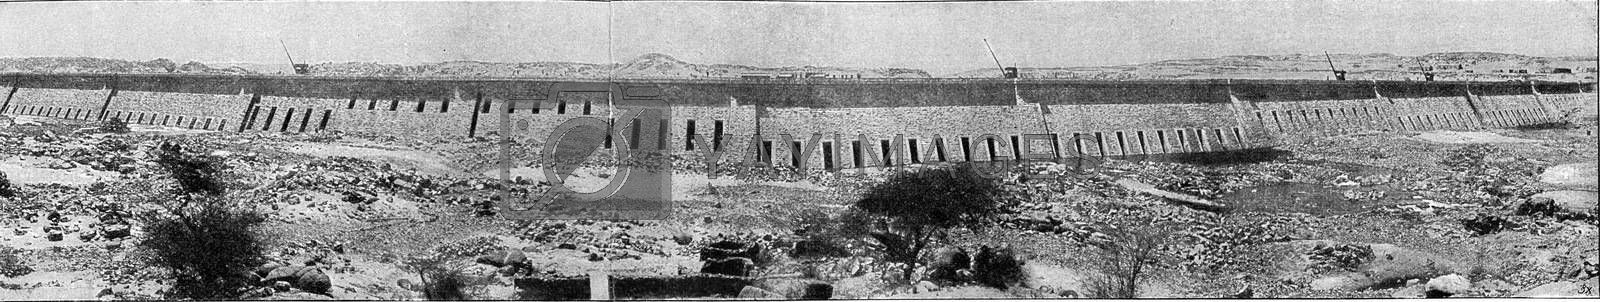 Nile Dam at Aswan in Upper Egypt, vintage engraved illustration. From the Universe and Humanity, 1910.